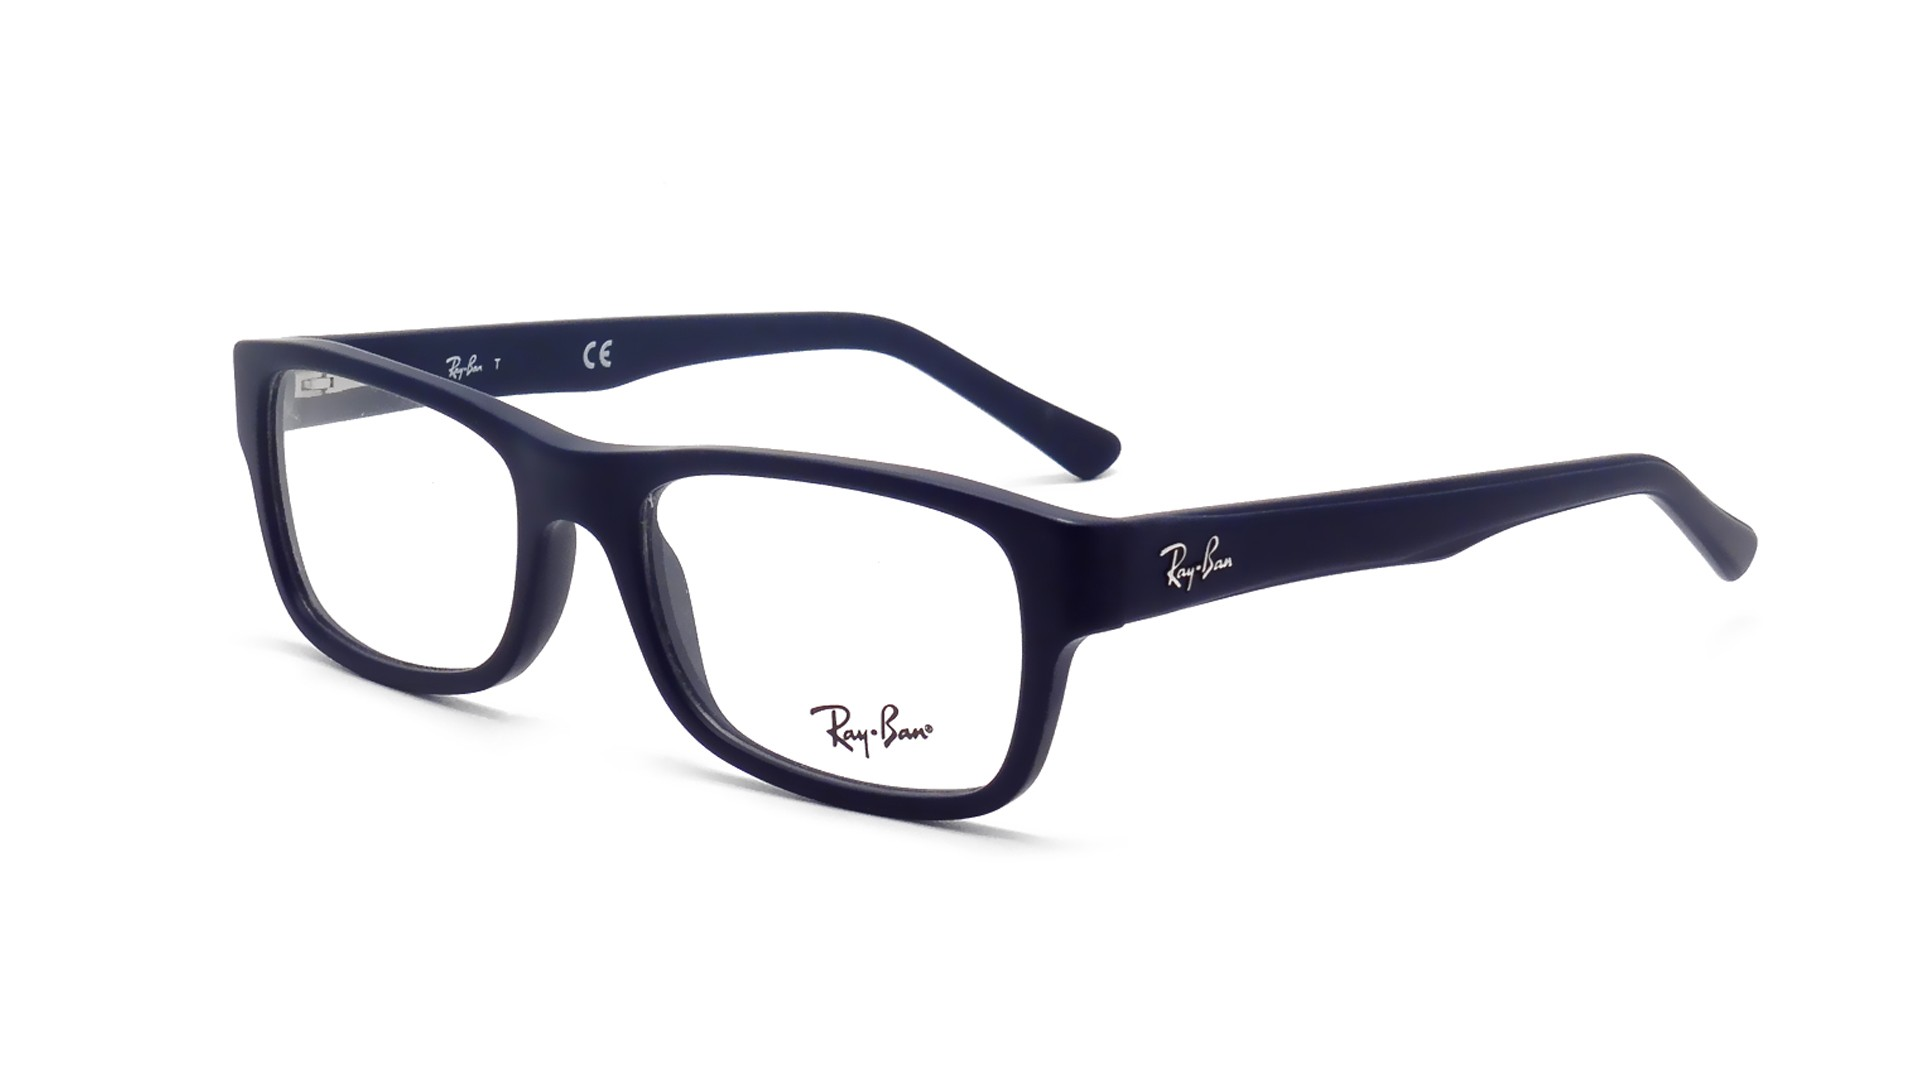 916b3c0a5b Ray Ban Youngster Enema